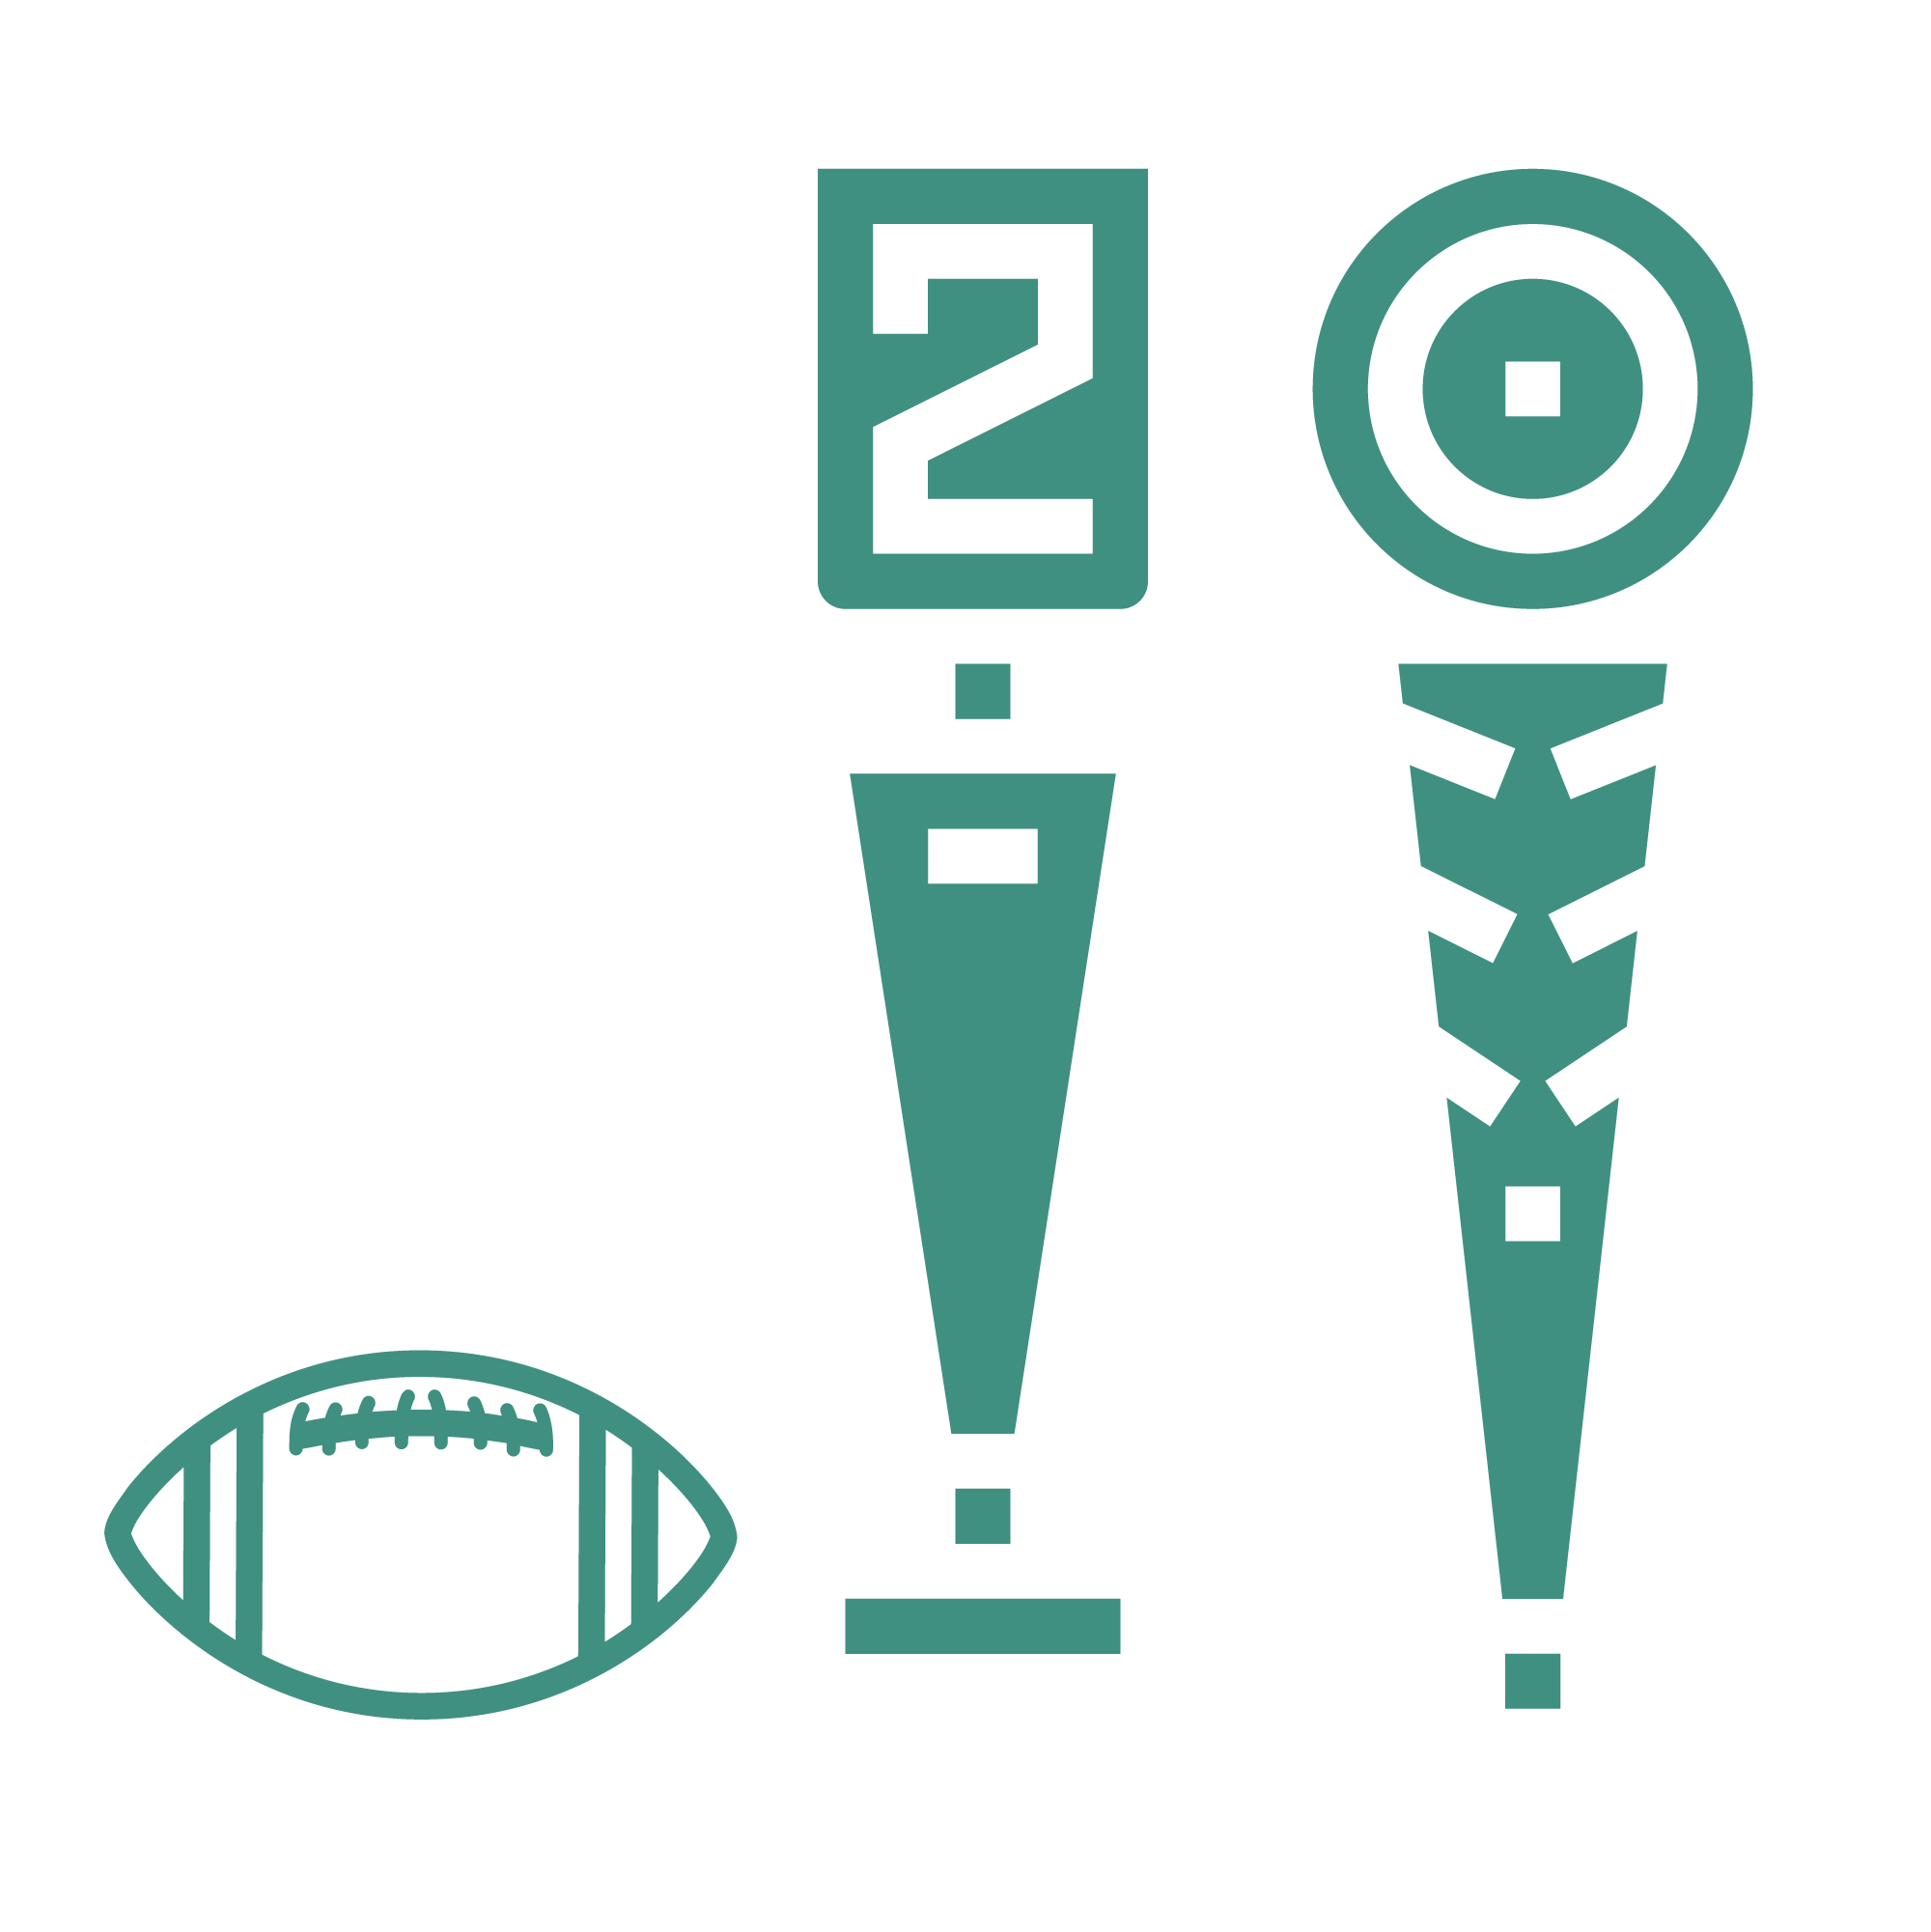 An icon depicting American football